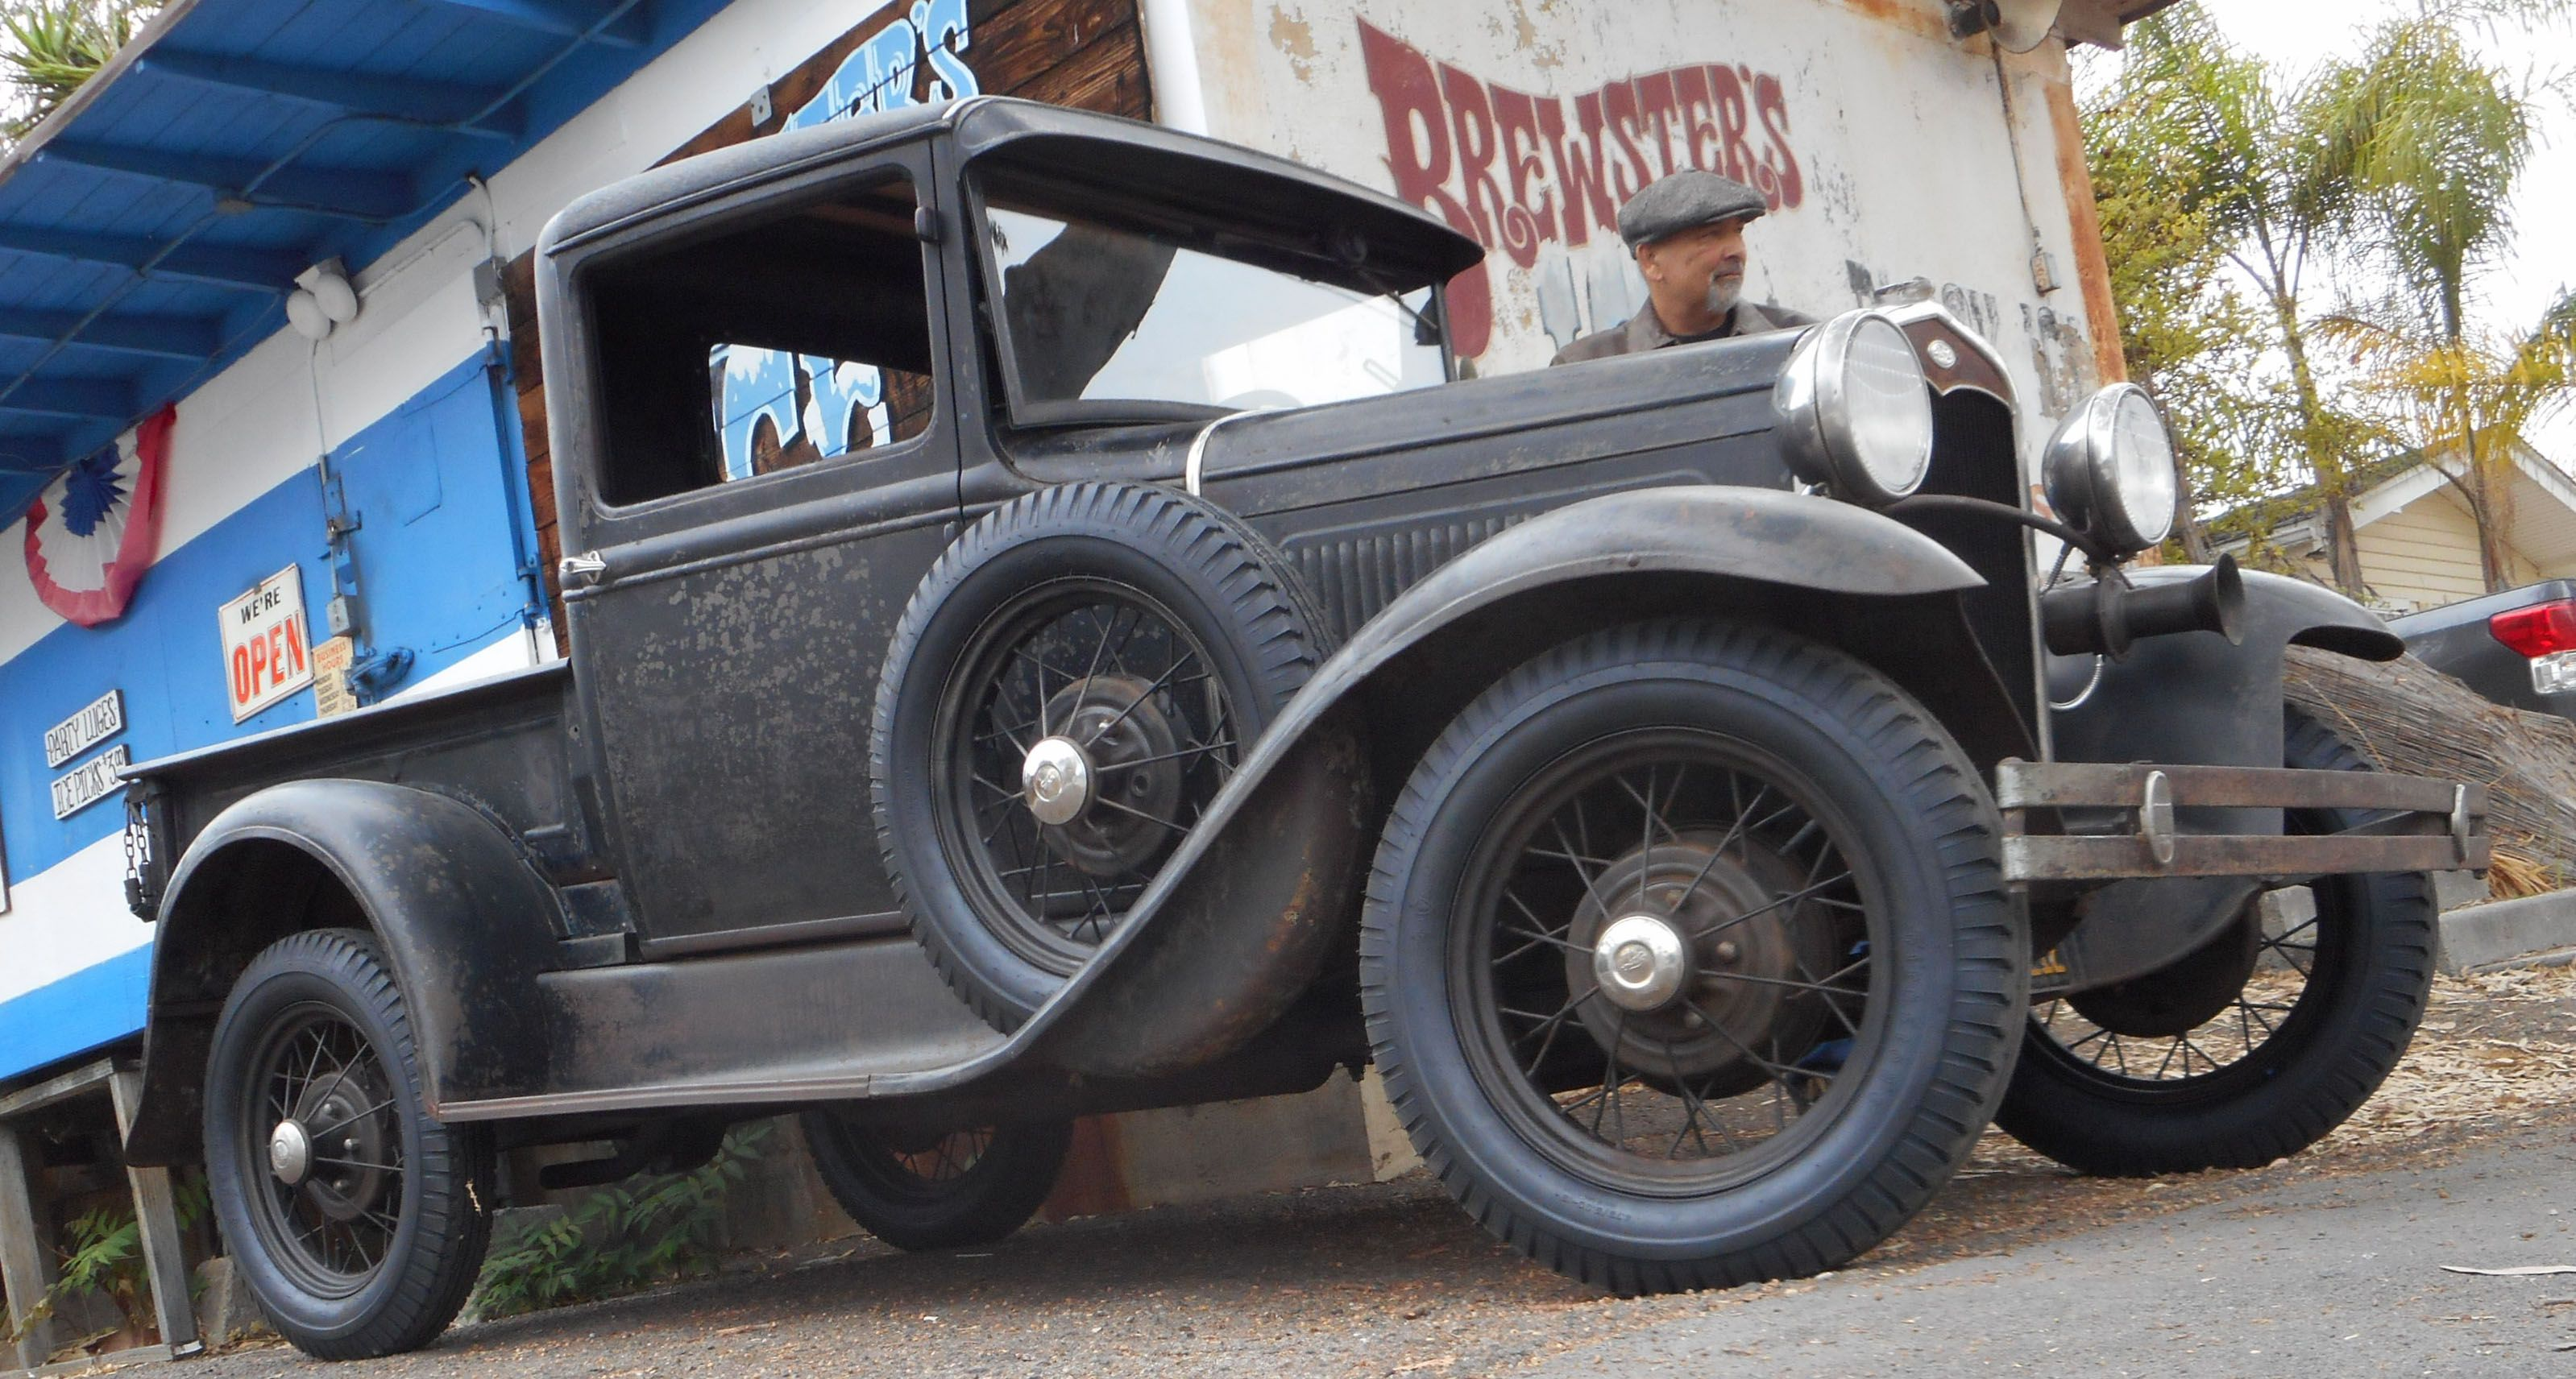 1931 Ford Model A Pickup at Brewsters Ice House Huntington Beach